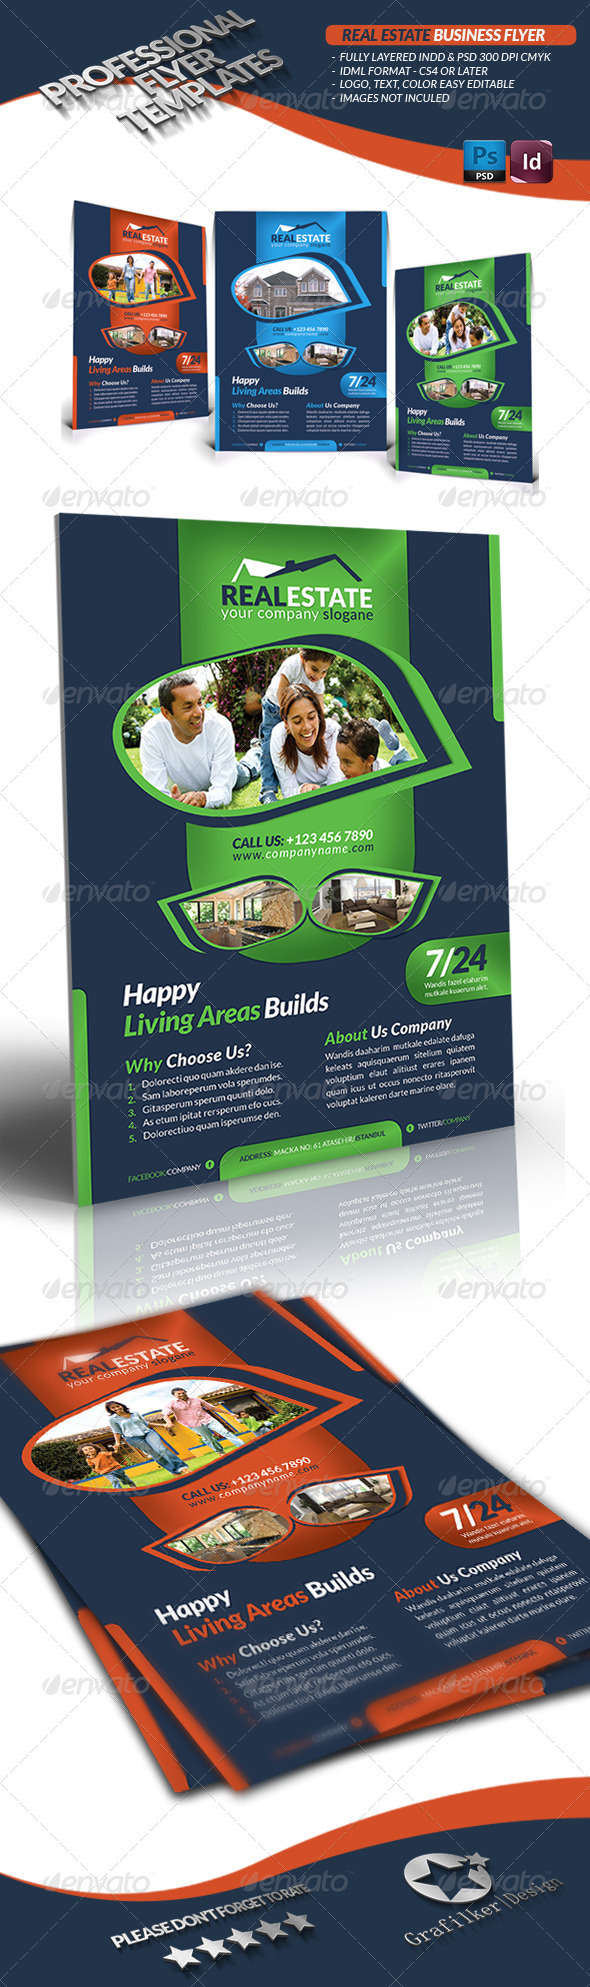 GraphicRiver Real Estate Business Flyer 3467177